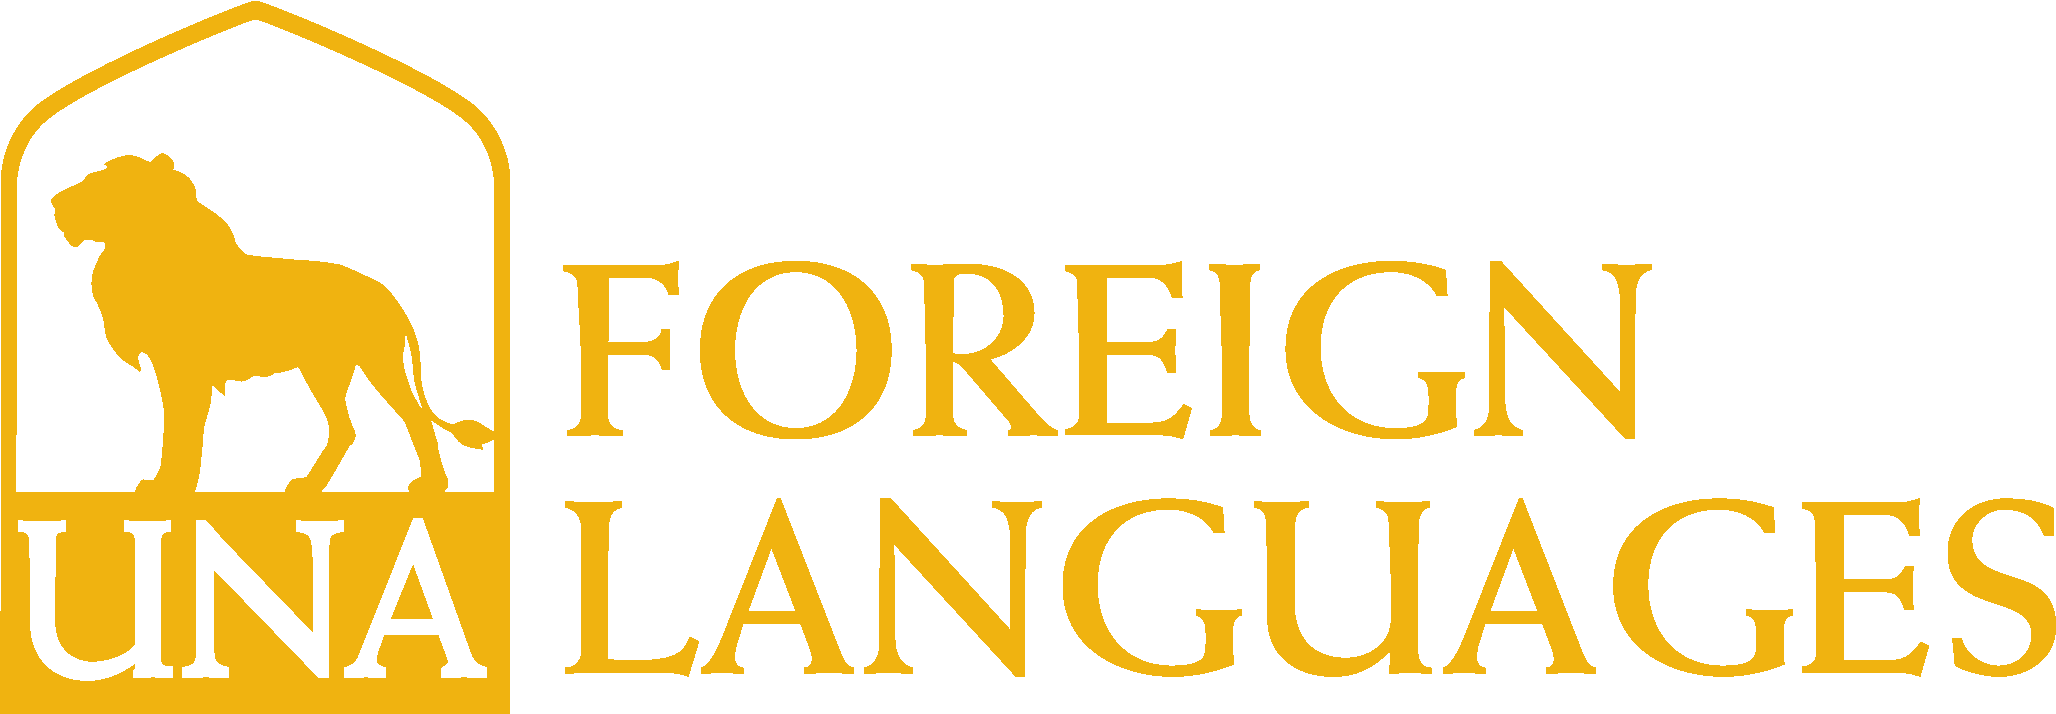 College of Arts and Sciences - Foreign Languages Logo - Gold - Version 3